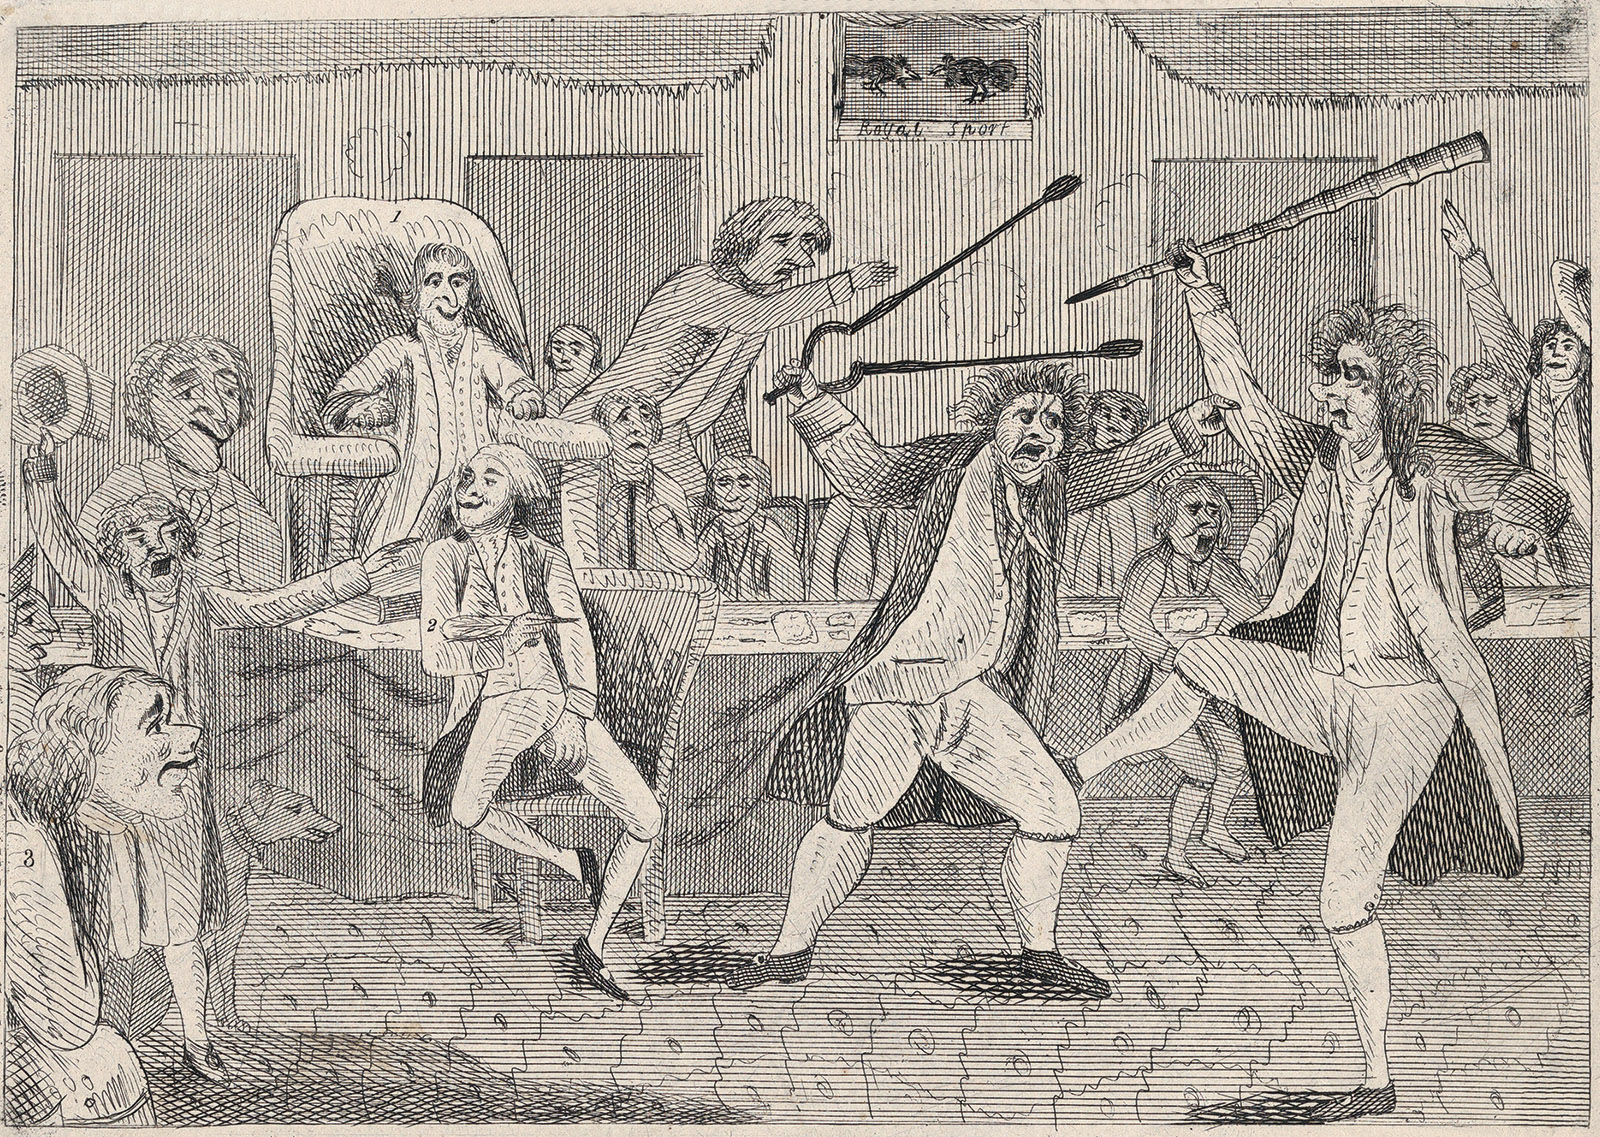 'Congressional Pugilists'; an anonymous cartoon depicting Republican and Federalist congressmen fighting on the floor of the House, 1798